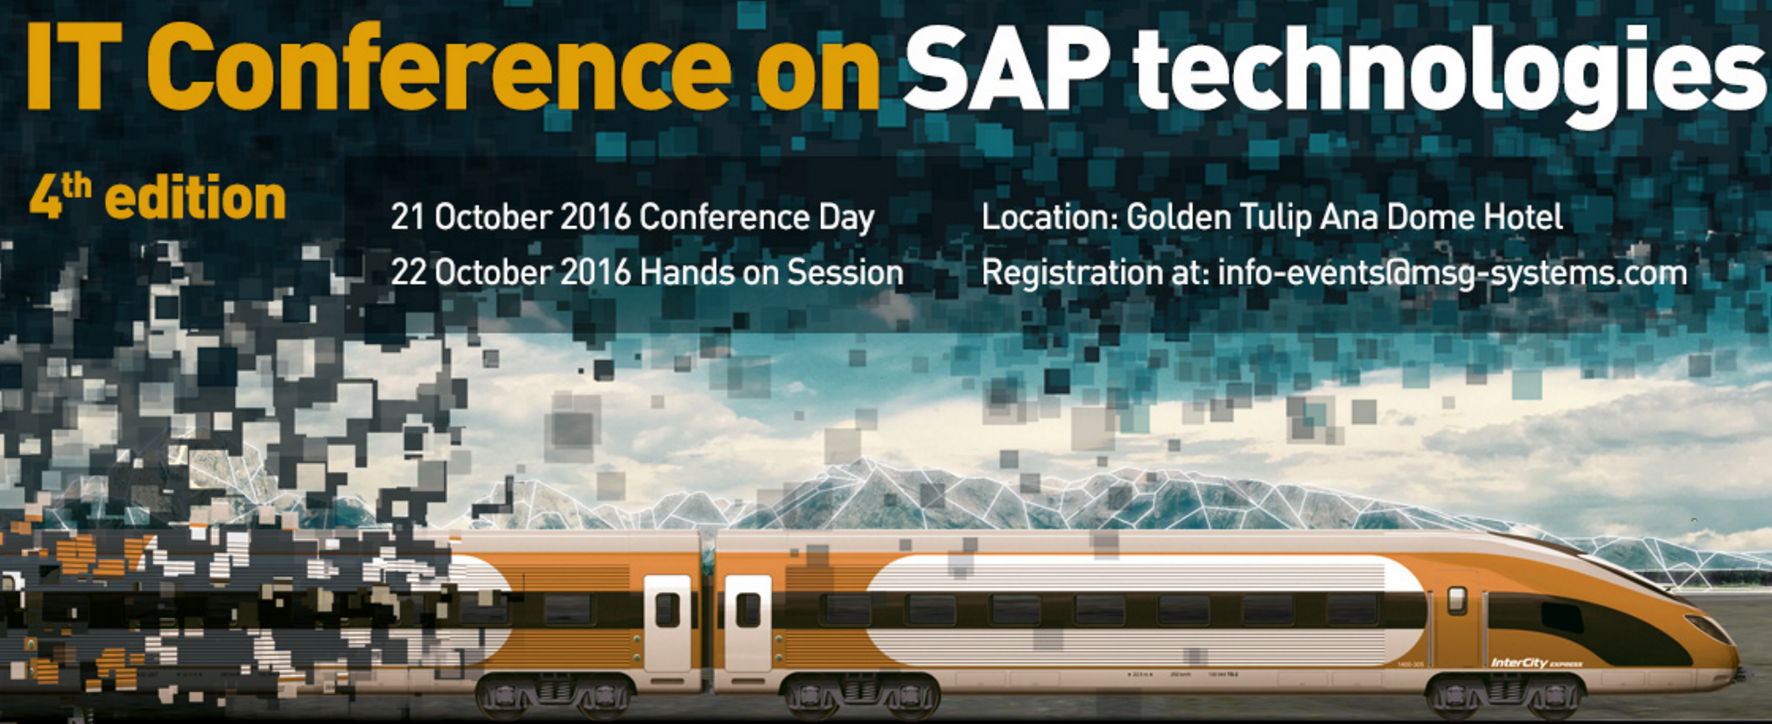 2016-08-24 15_26_01-IT Conference on SAP Technologies, 2016 - powered by msg.png